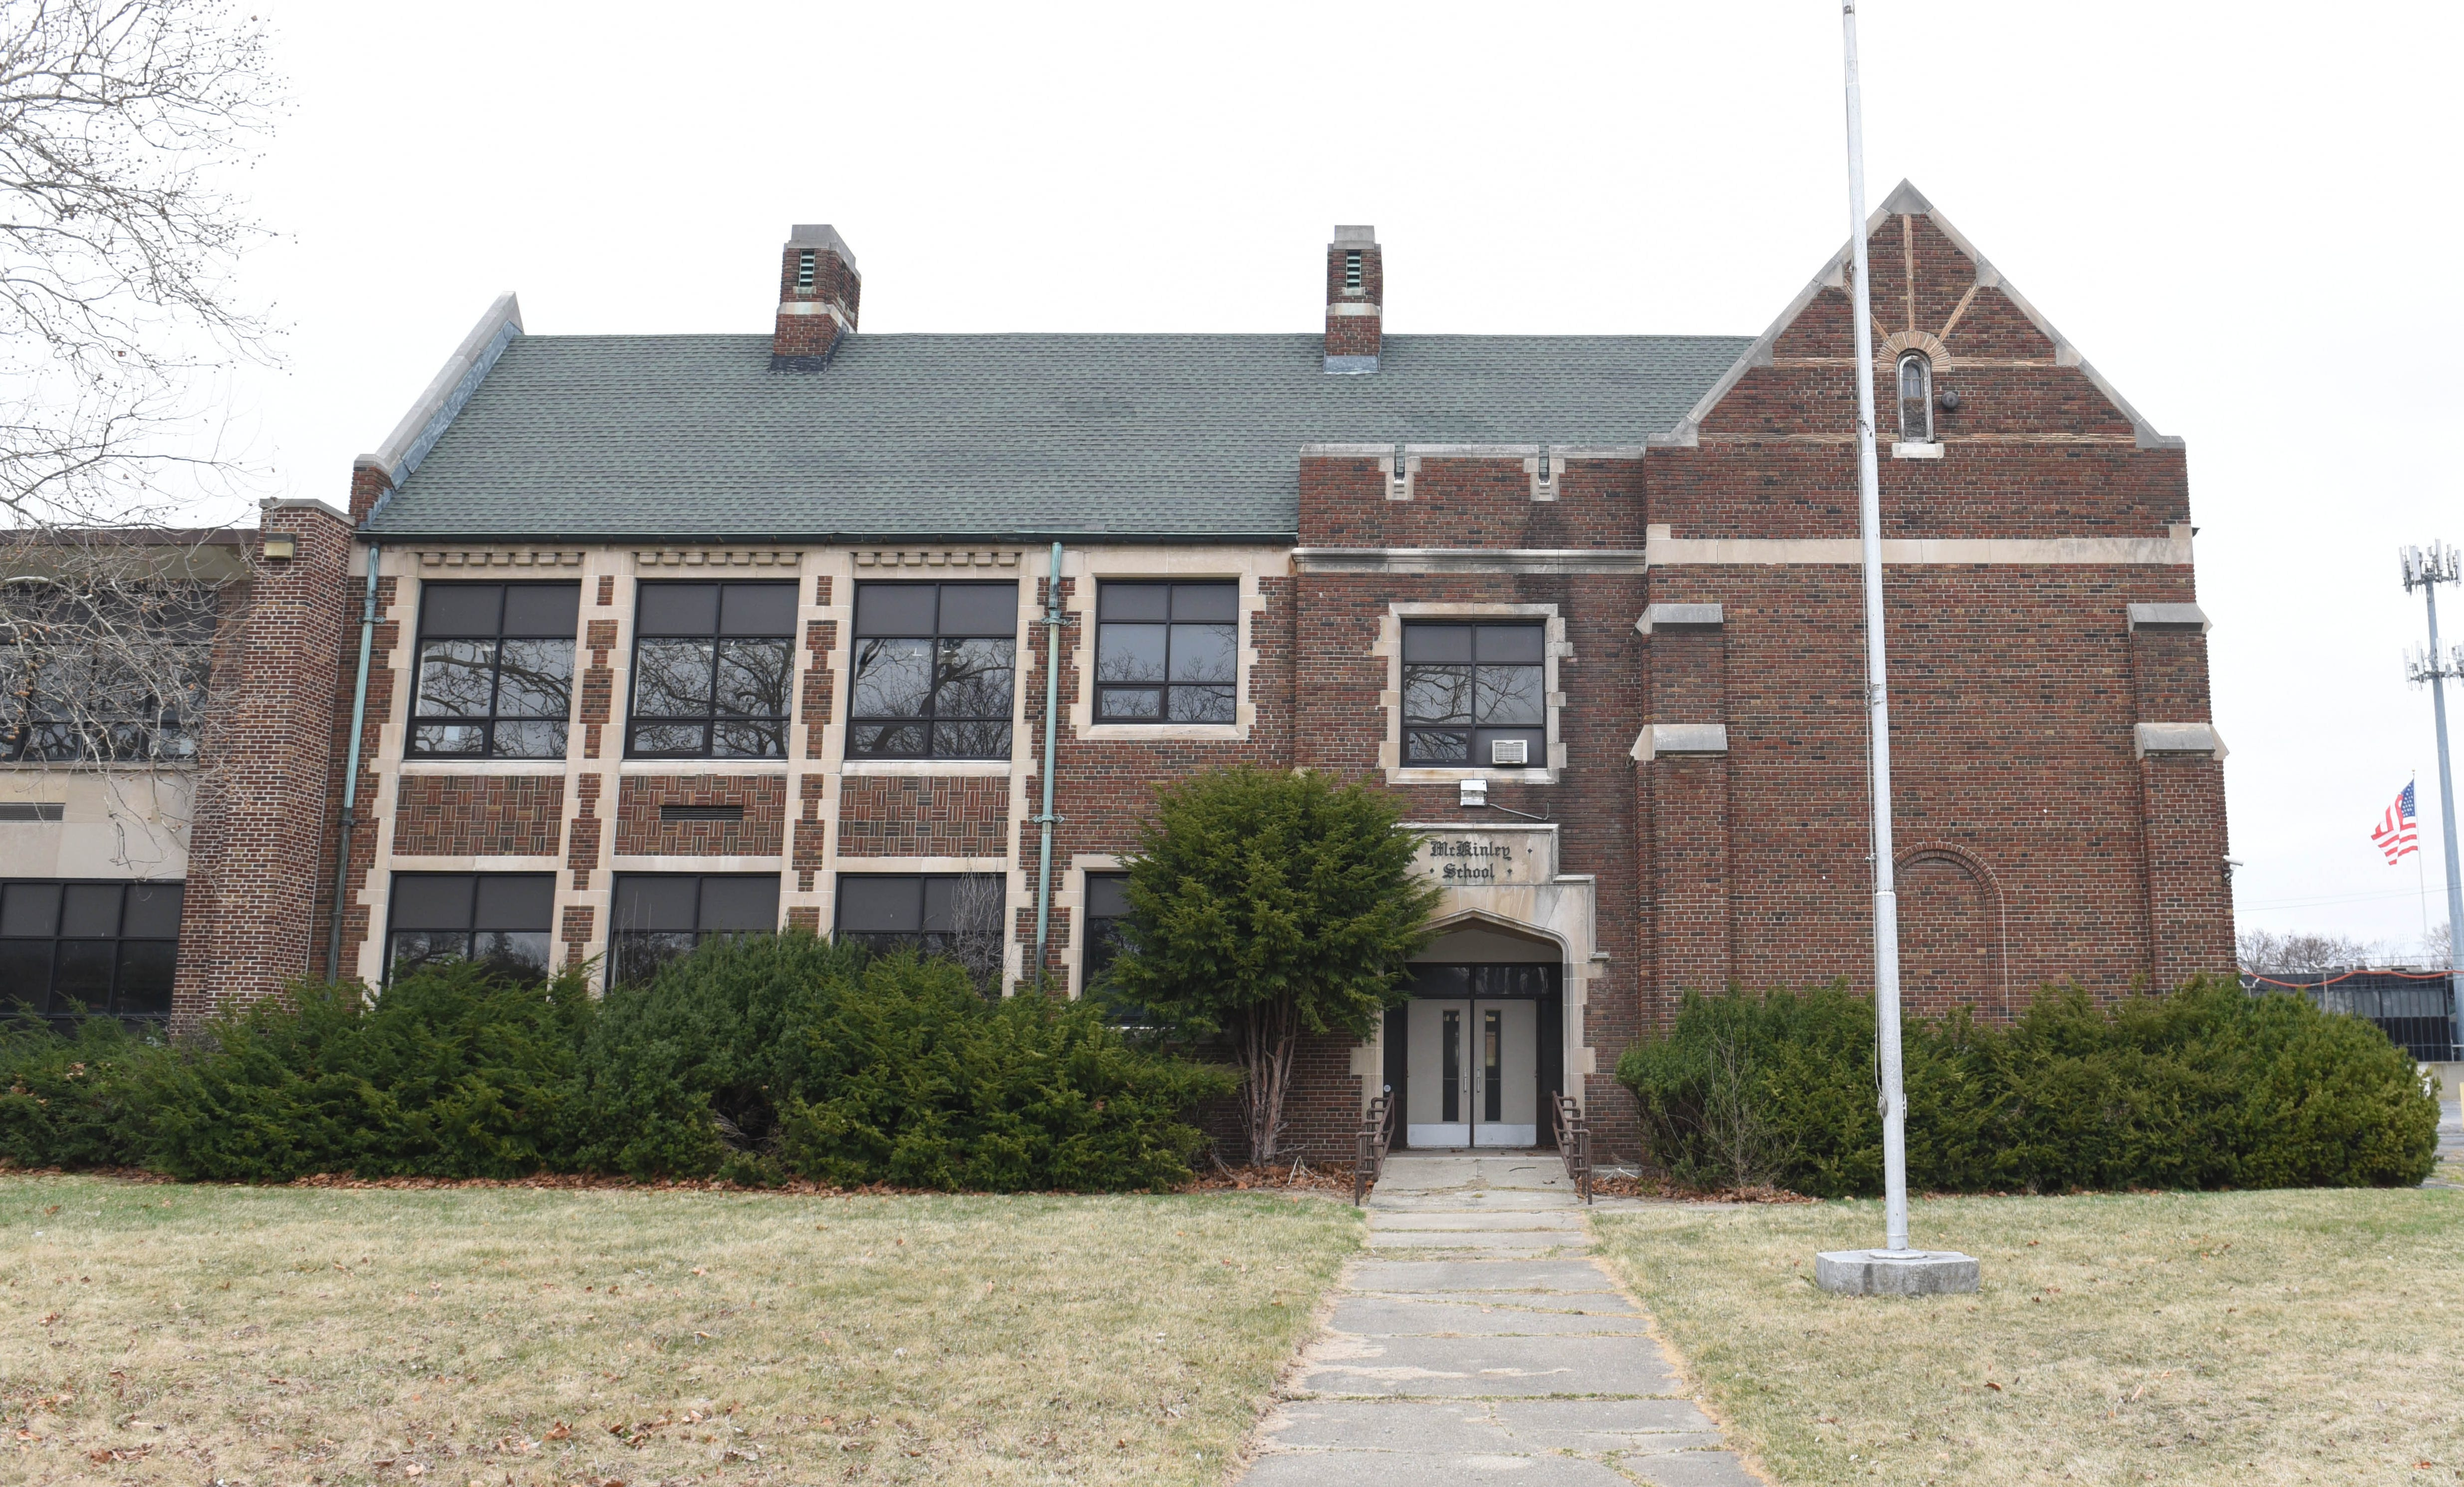 The former Academy of Southfield campus now owned by the Southfield Nonprofit Housing Corporation includes this 1929 building, originally called the McKinley School.  The plan is to convert the campus to senior housing as part of a project expected to cost more than $21 million.